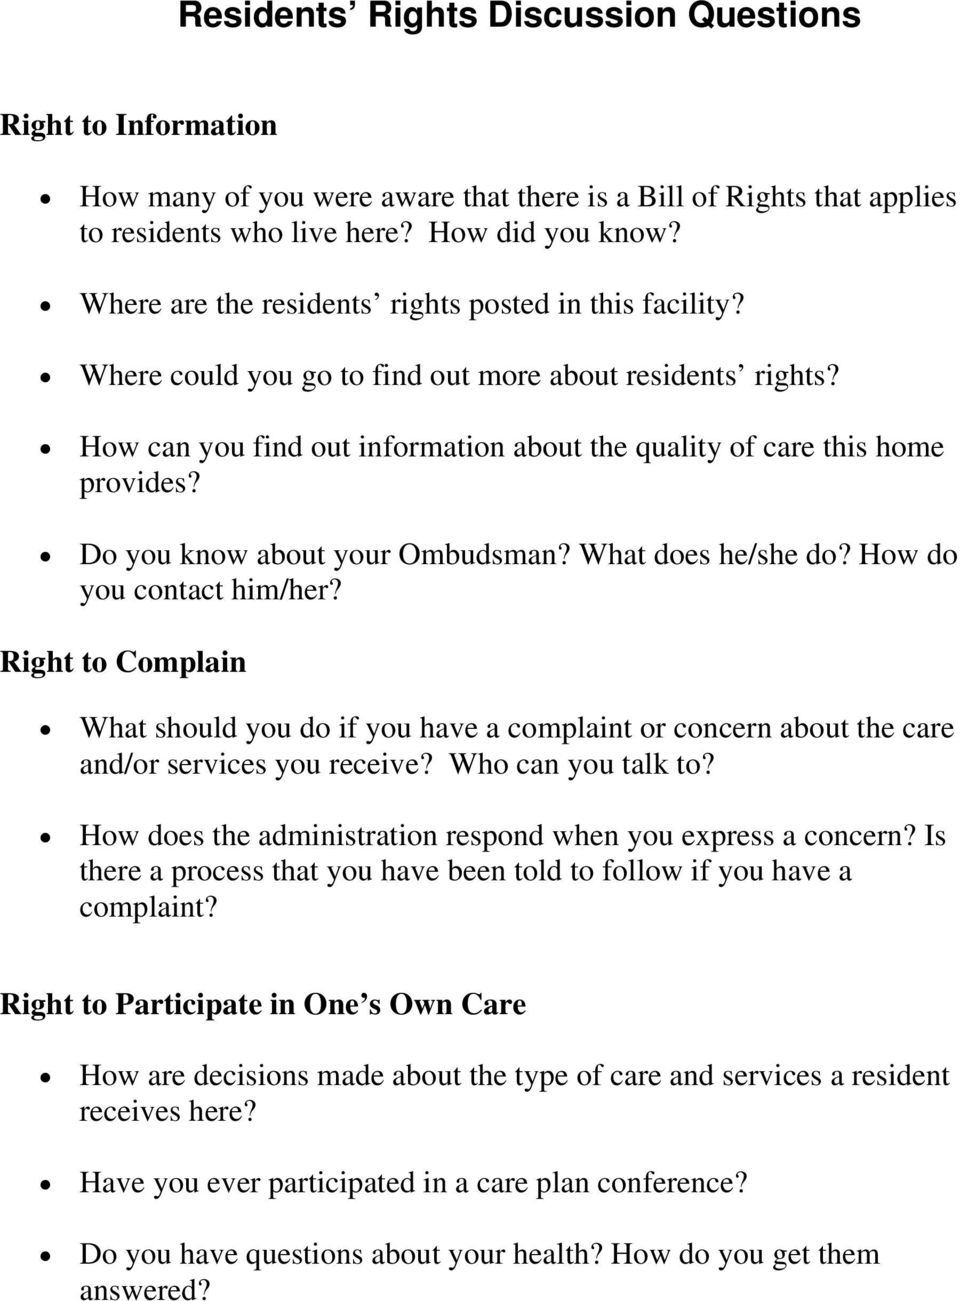 Do you know about your Ombudsman? What does he/she do? How do you contact him/her? Right to Complain What should you do if you have a complaint or concern about the care and/or services you receive?